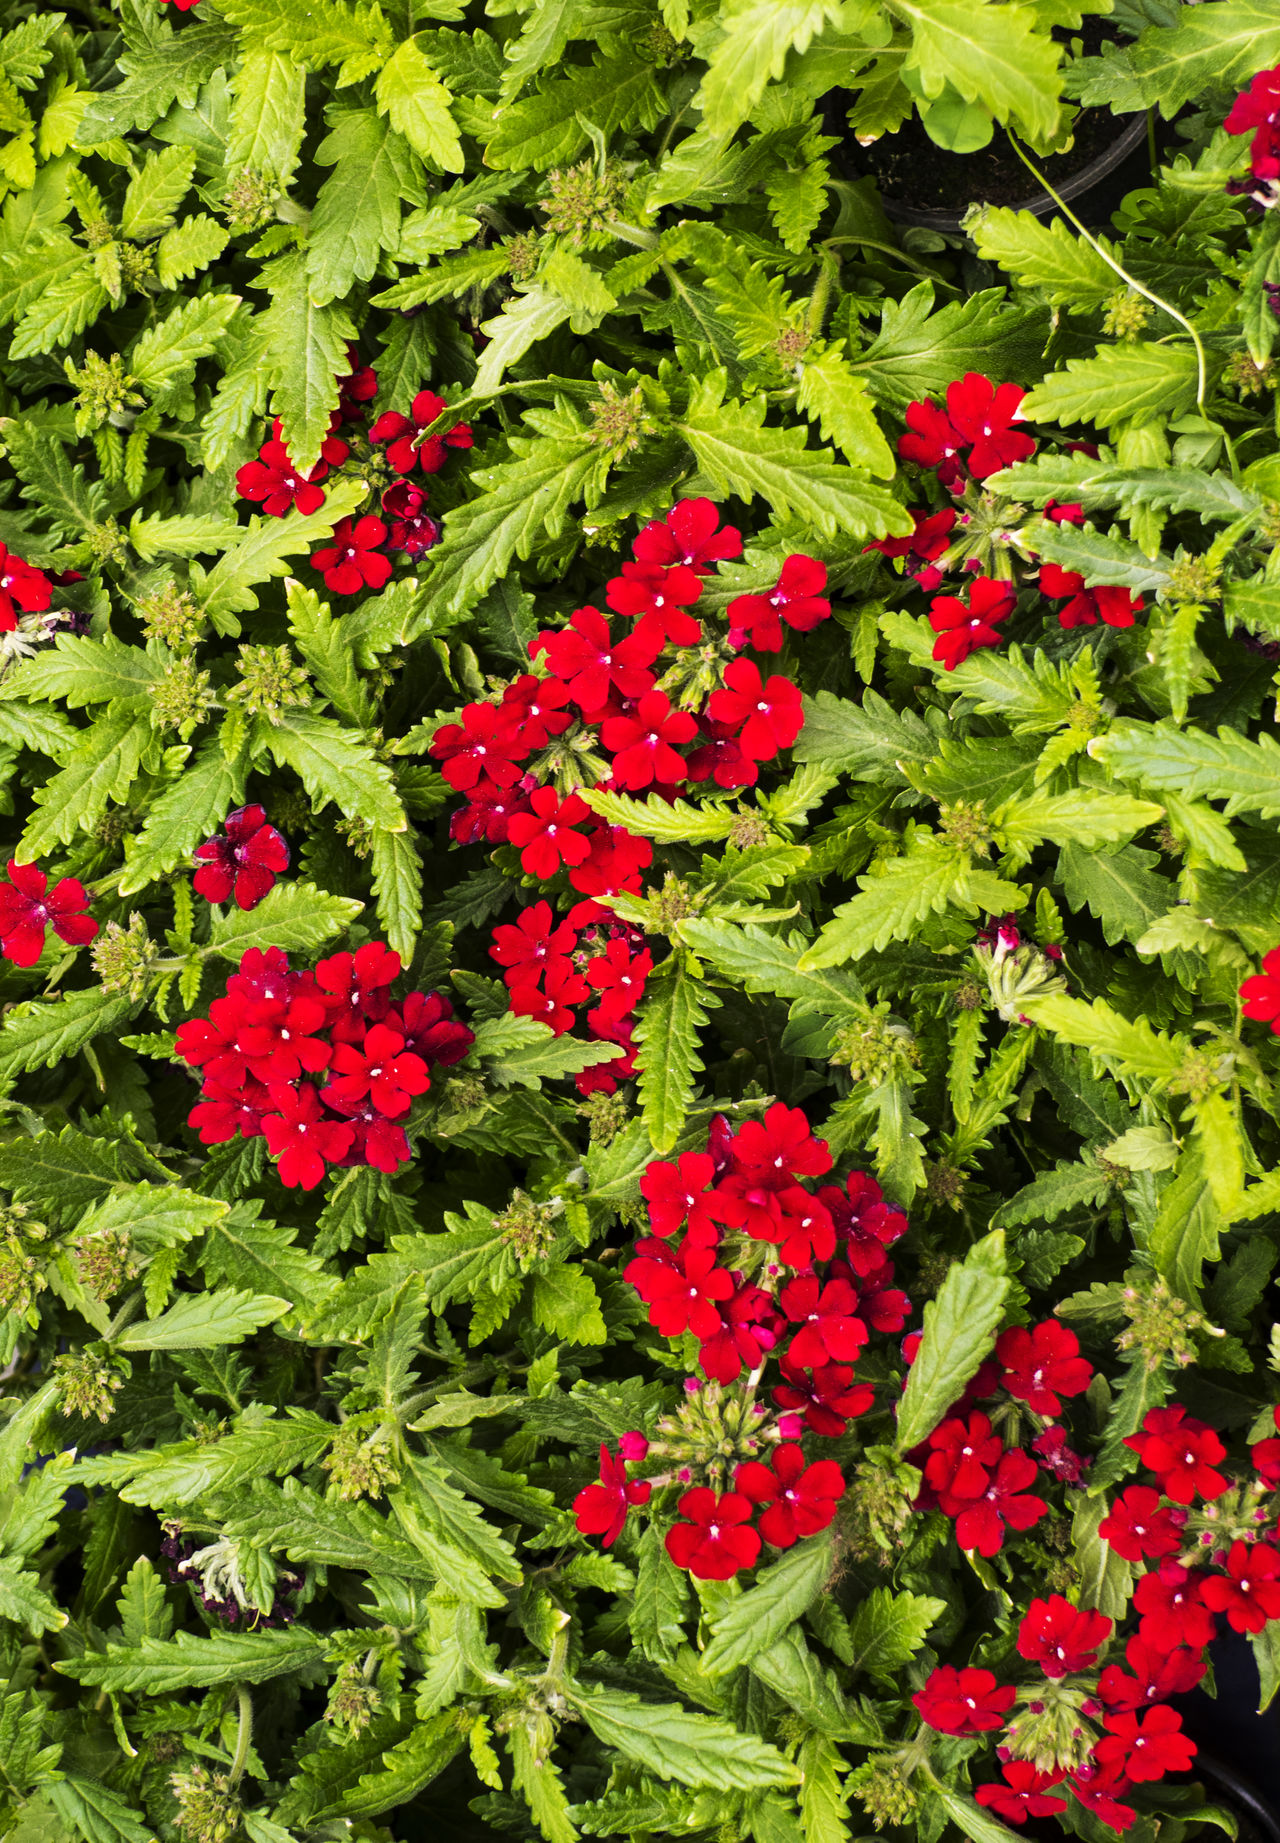 Blooming red spring Primrose in flower bed Beauty In Nature Close-up Day Flower Flower Head Fragility Freshness Full Frame Green Color Growth Leaf Nature No People Outdoors Plant Primrose Red